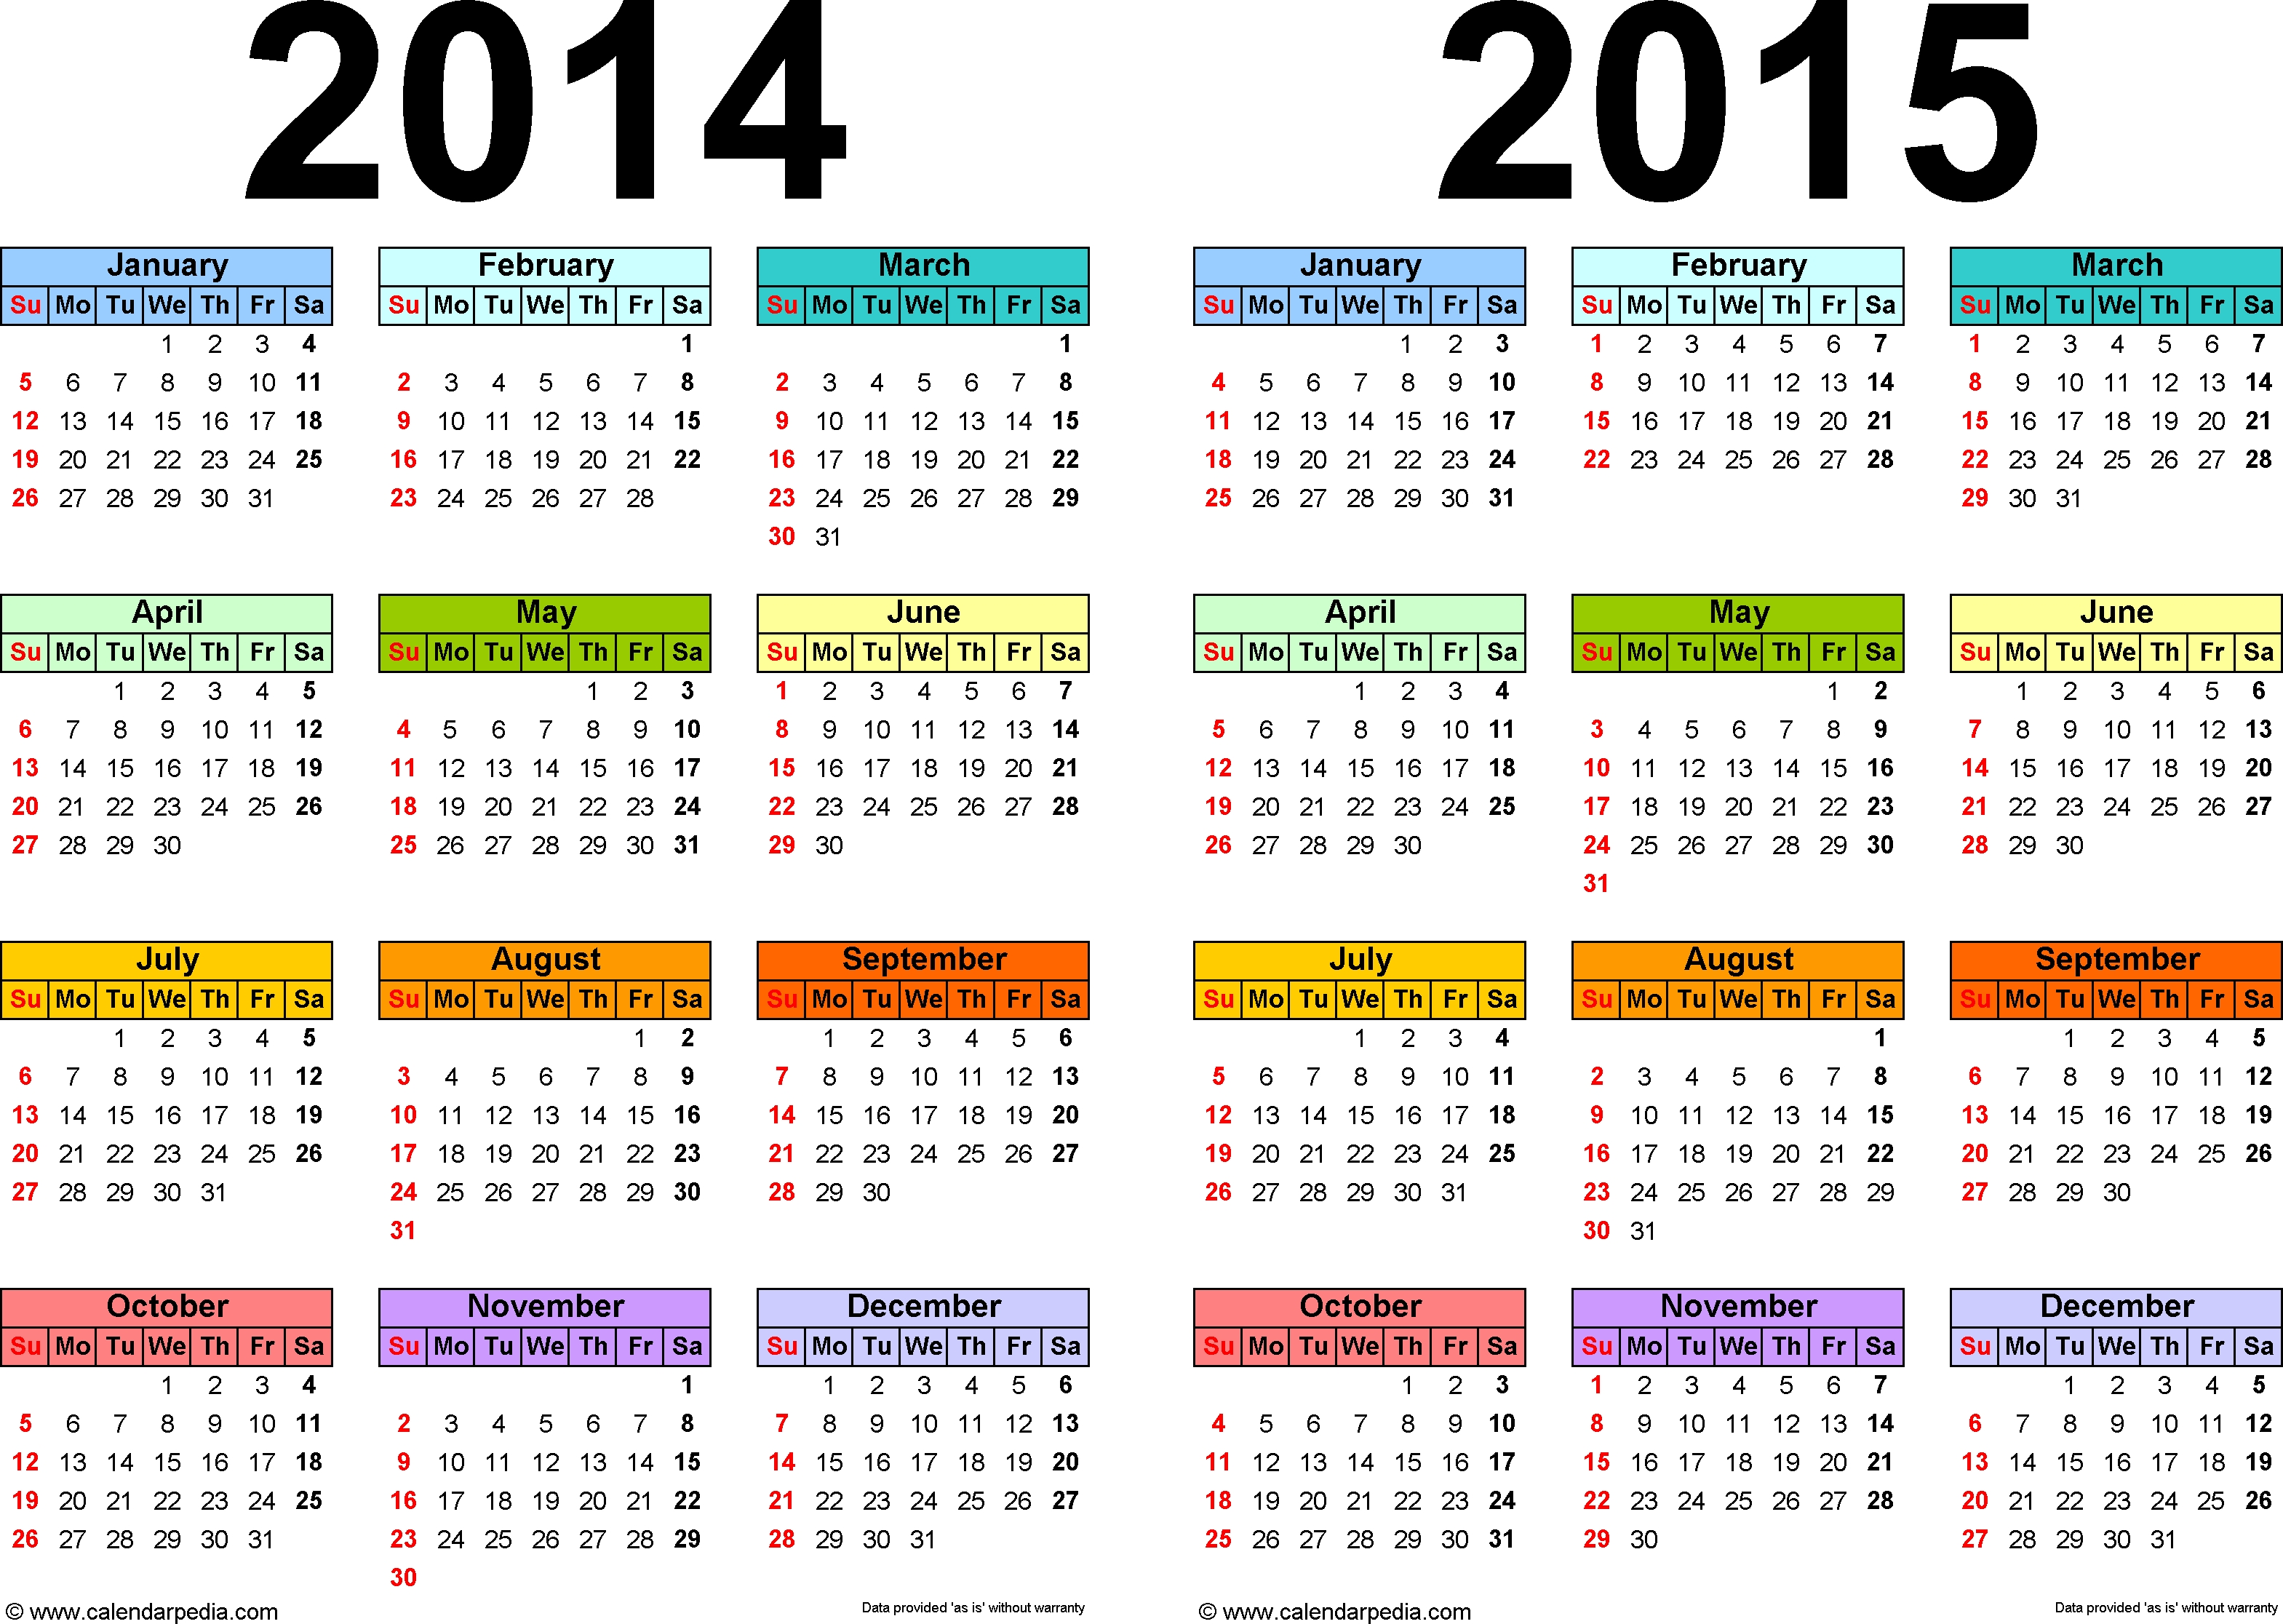 2014-2015 Calendar - Free Printable Two-Year Word Calendars  2014 Calendar Printable Yearly Calendars